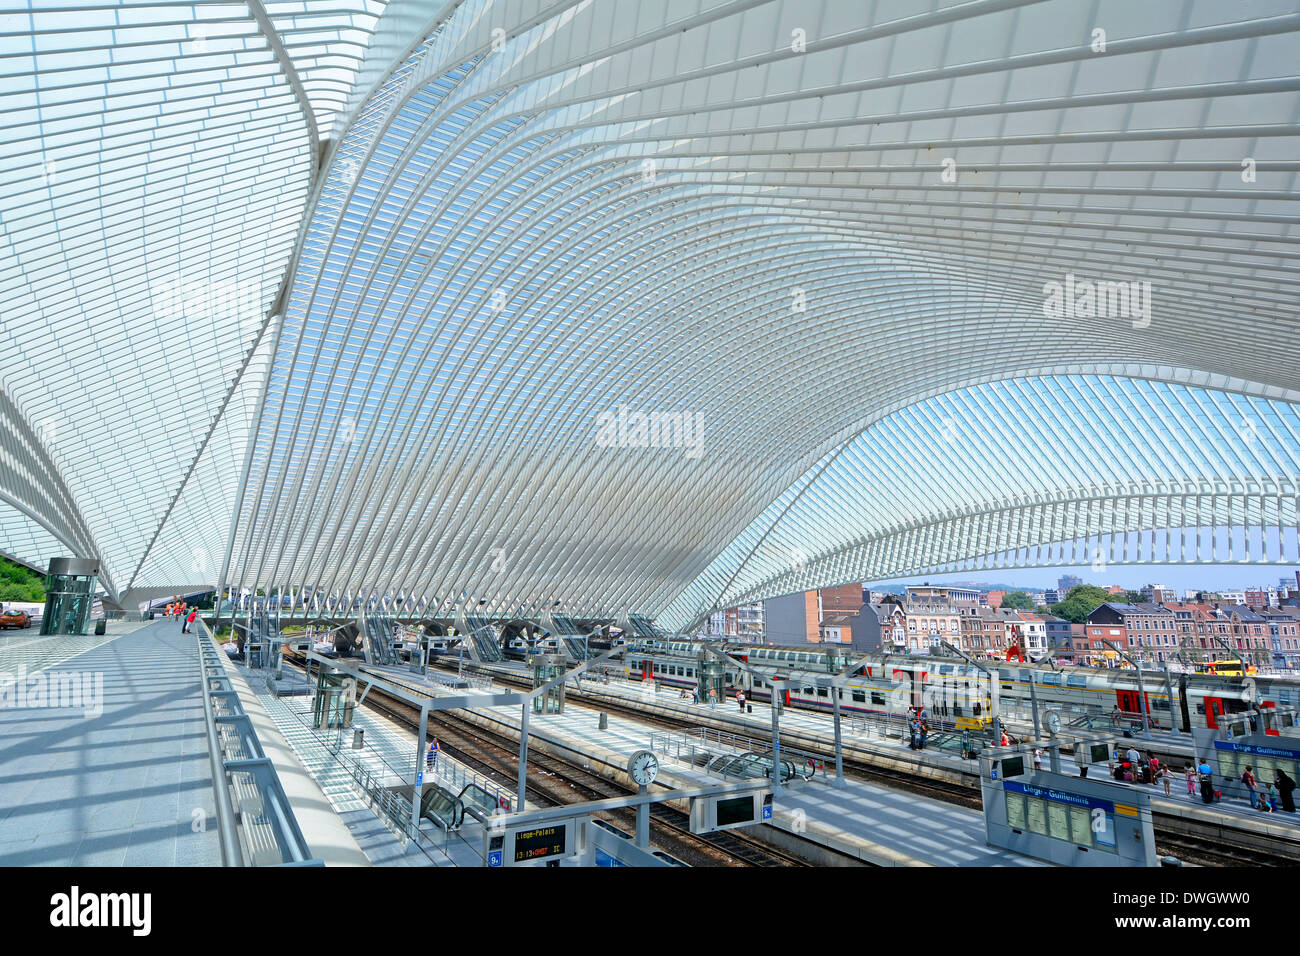 Glass ceiling at modern public transport infrastructure building curved over Belgium train station railway track & platform town of Liège EU beyond - Stock Image